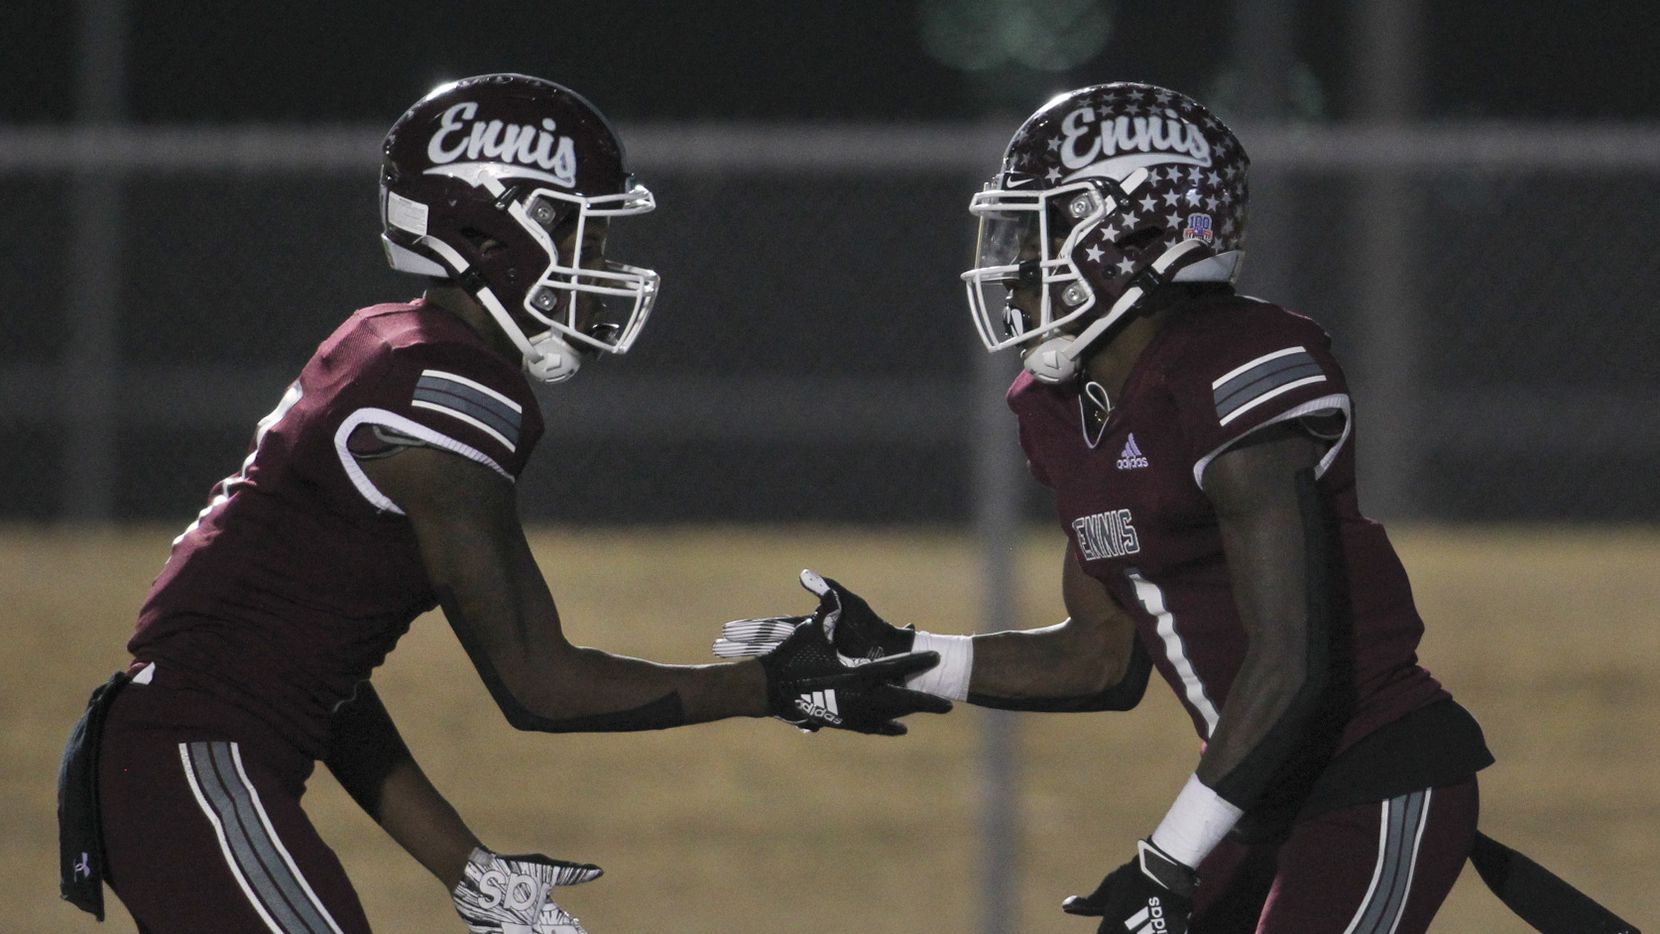 Ennis receiver Karon Smith (1), right, celebrates with receiver Laylon Spencer (7), following Smith's second quarter touchdown reception in their game against Frisco Liberty. The two teams played their Class 5A Division ll  bi-district round playoff football game at Lion Memorial Stadium in Ennis on December 11, 2020.